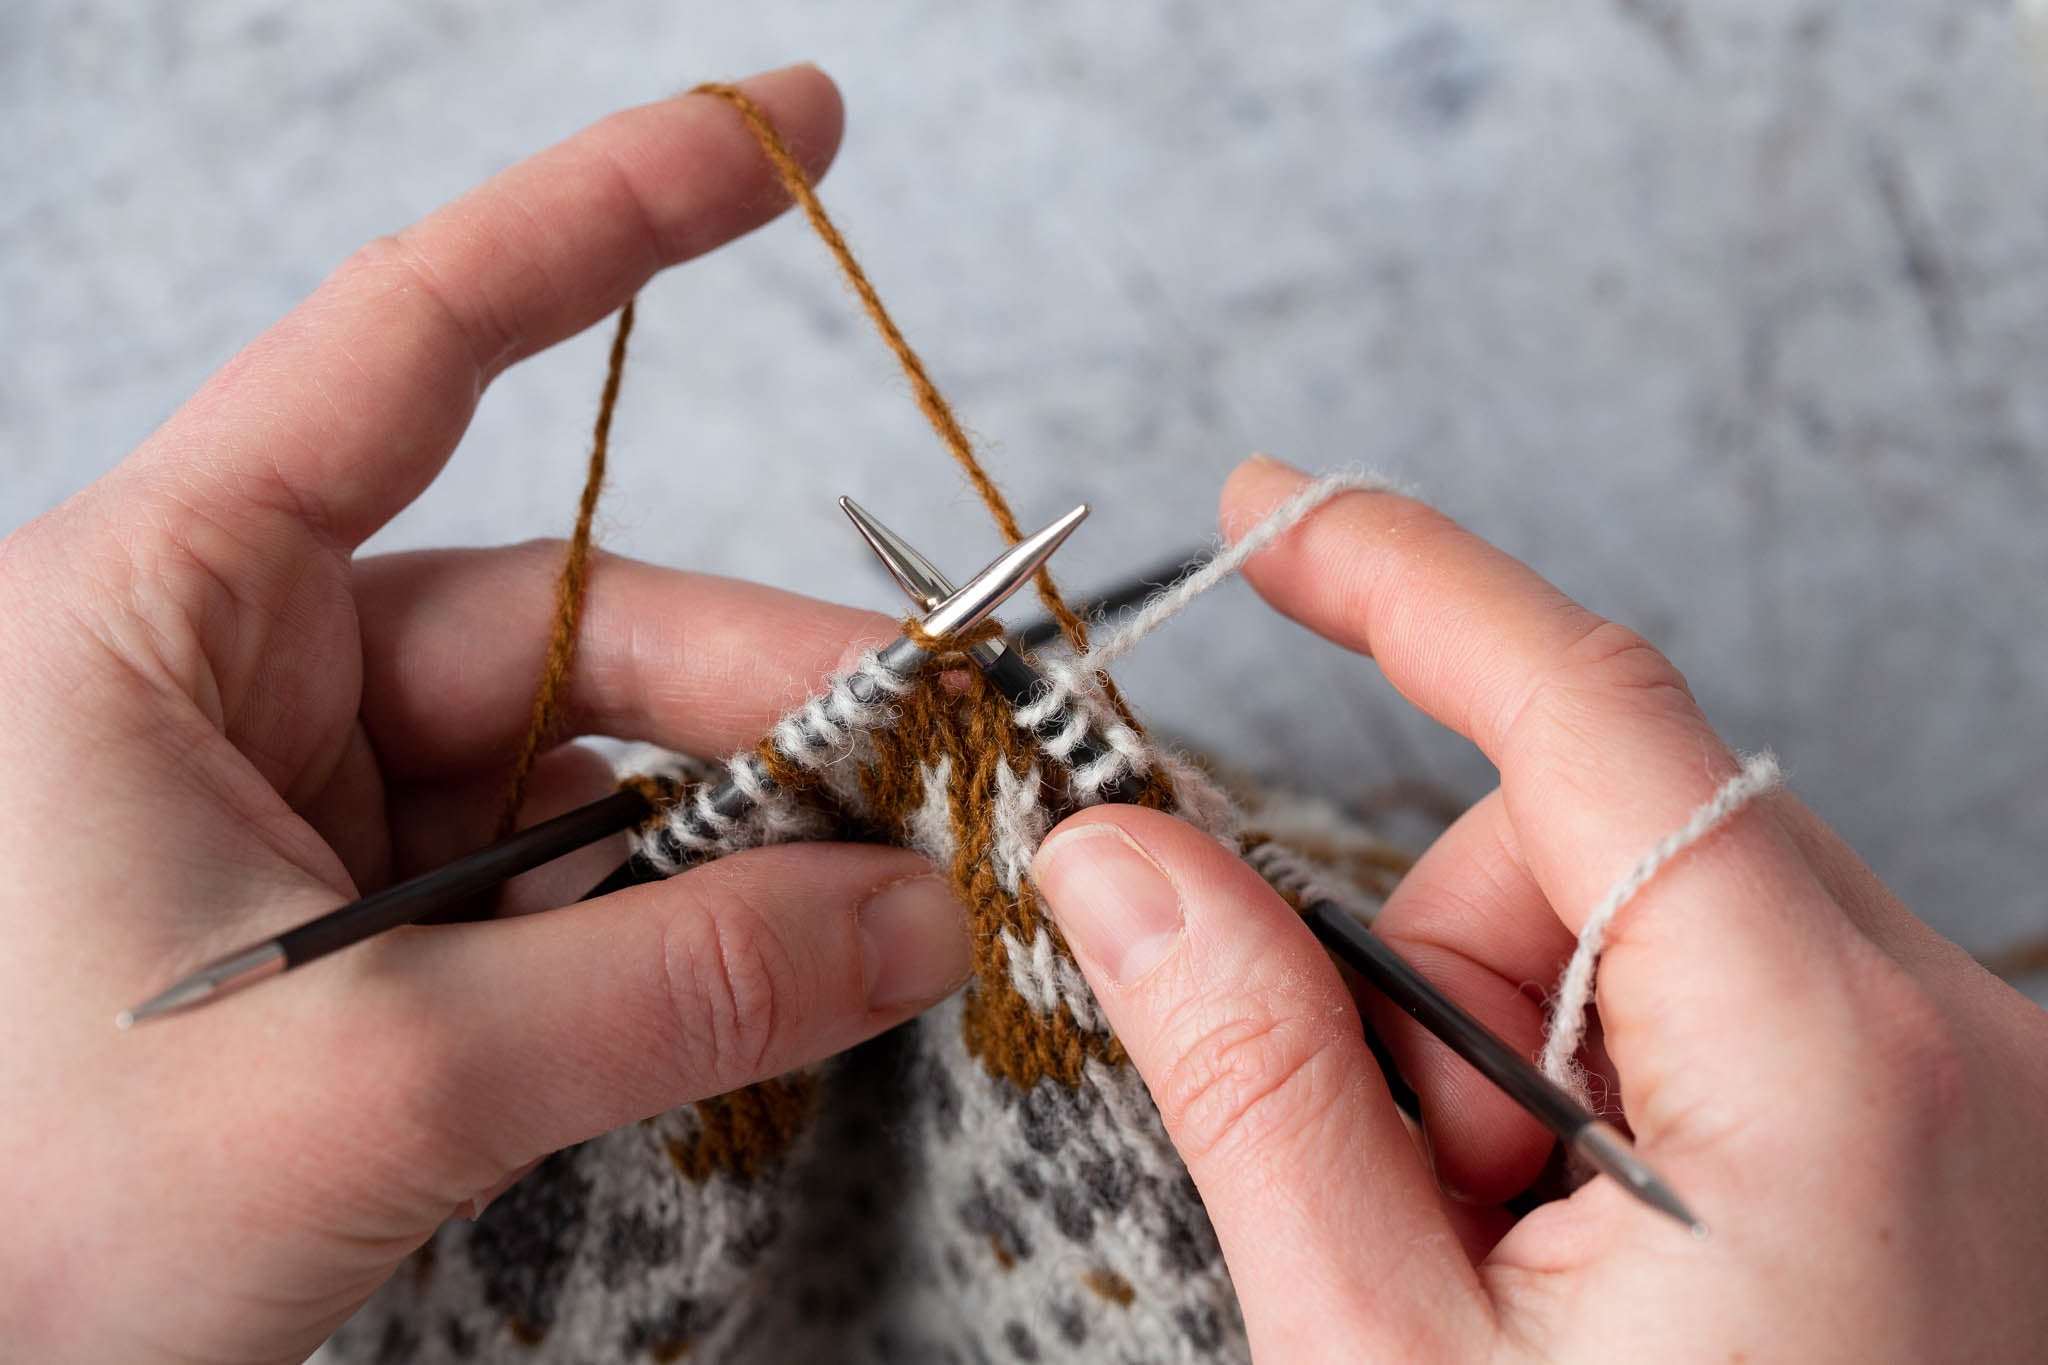 Preparing to catch a longer float across the back of the work. The yarn to be caught is in the left hand.